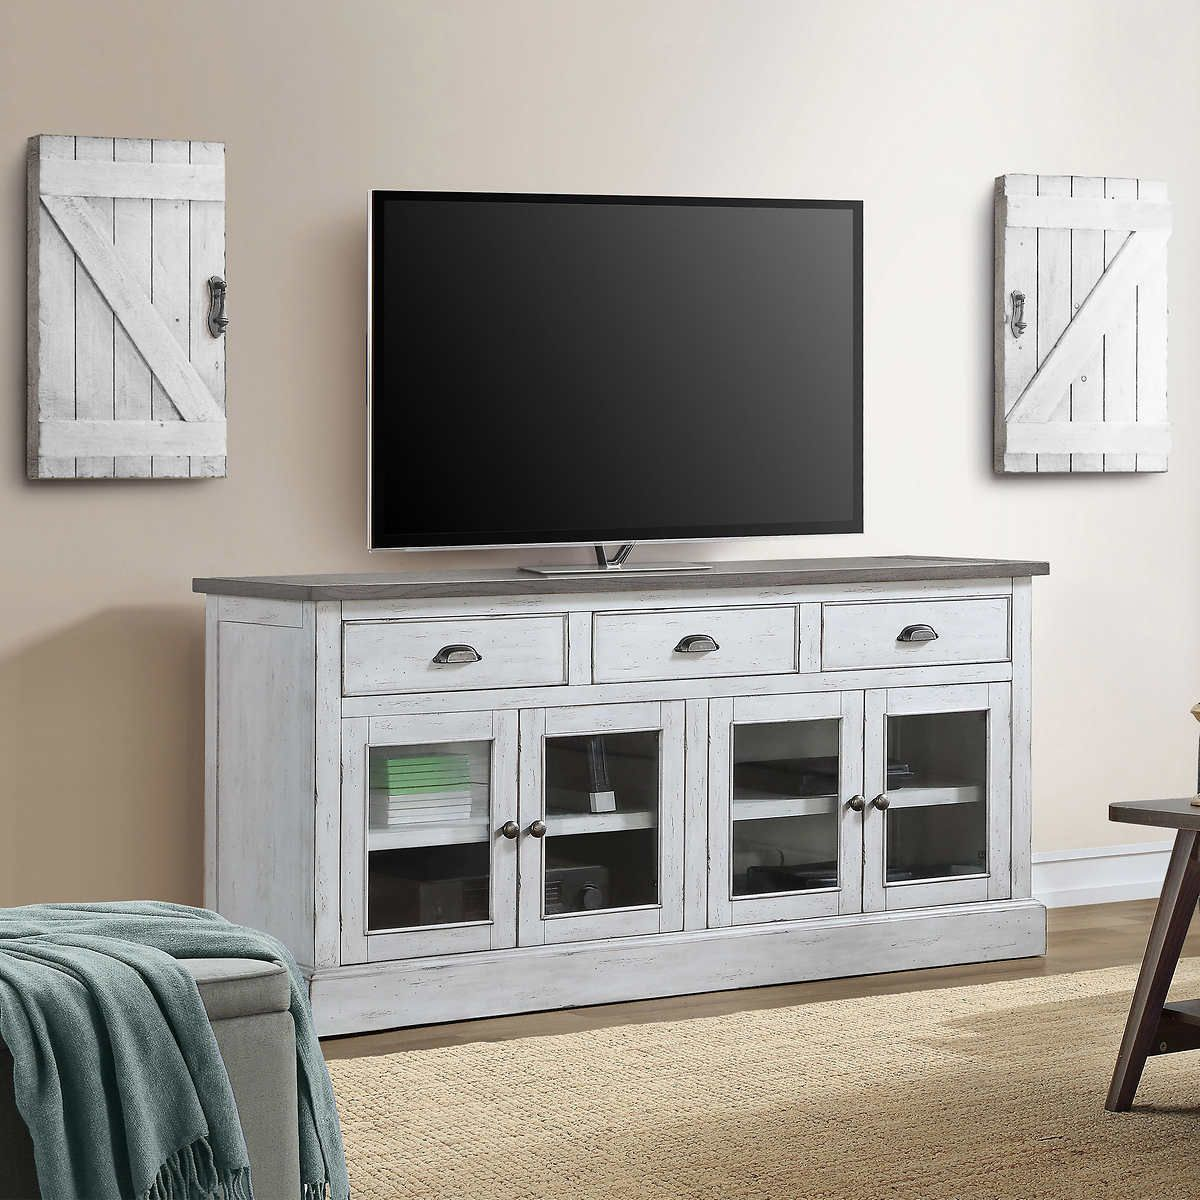 Bayside Furnishings Lawler 71 Accent Console 500 At Costco Bayside Furnishings Furnishings Bayside Furniture